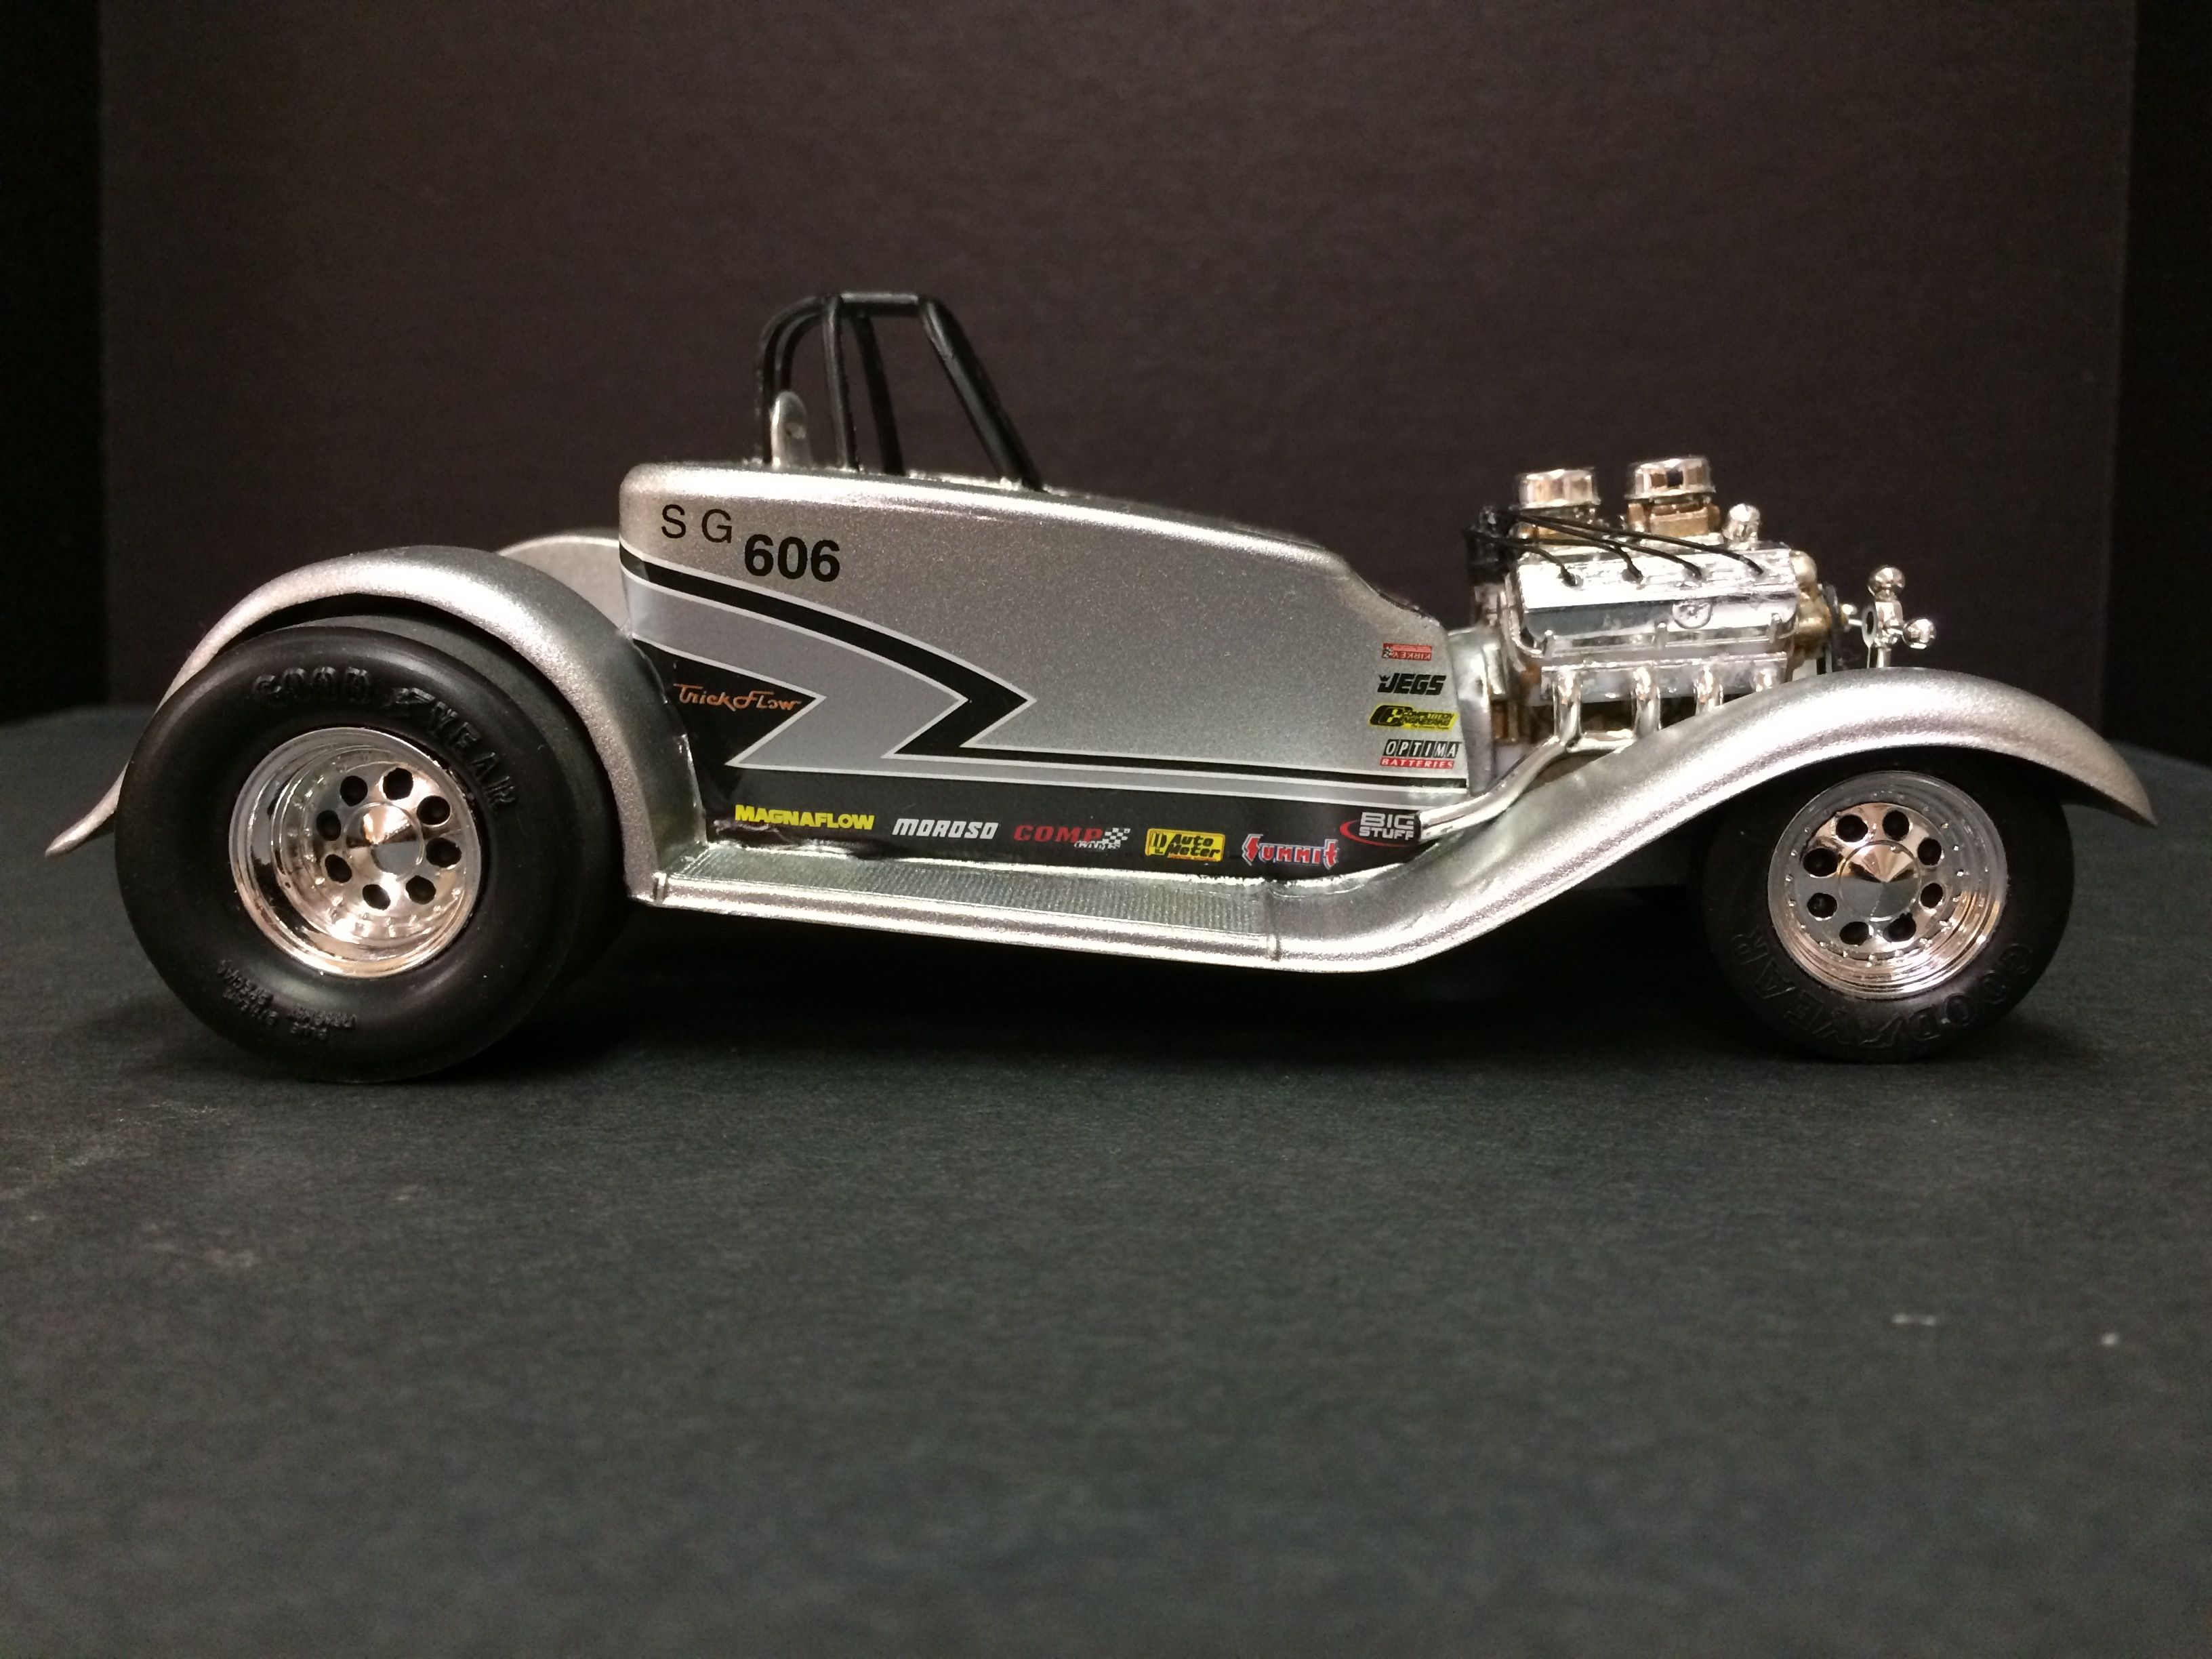 The Wild Child Super Gas Roadster I Built With Parts And Pieces I Had Stashed Away Car Model Scale Models Roadsters